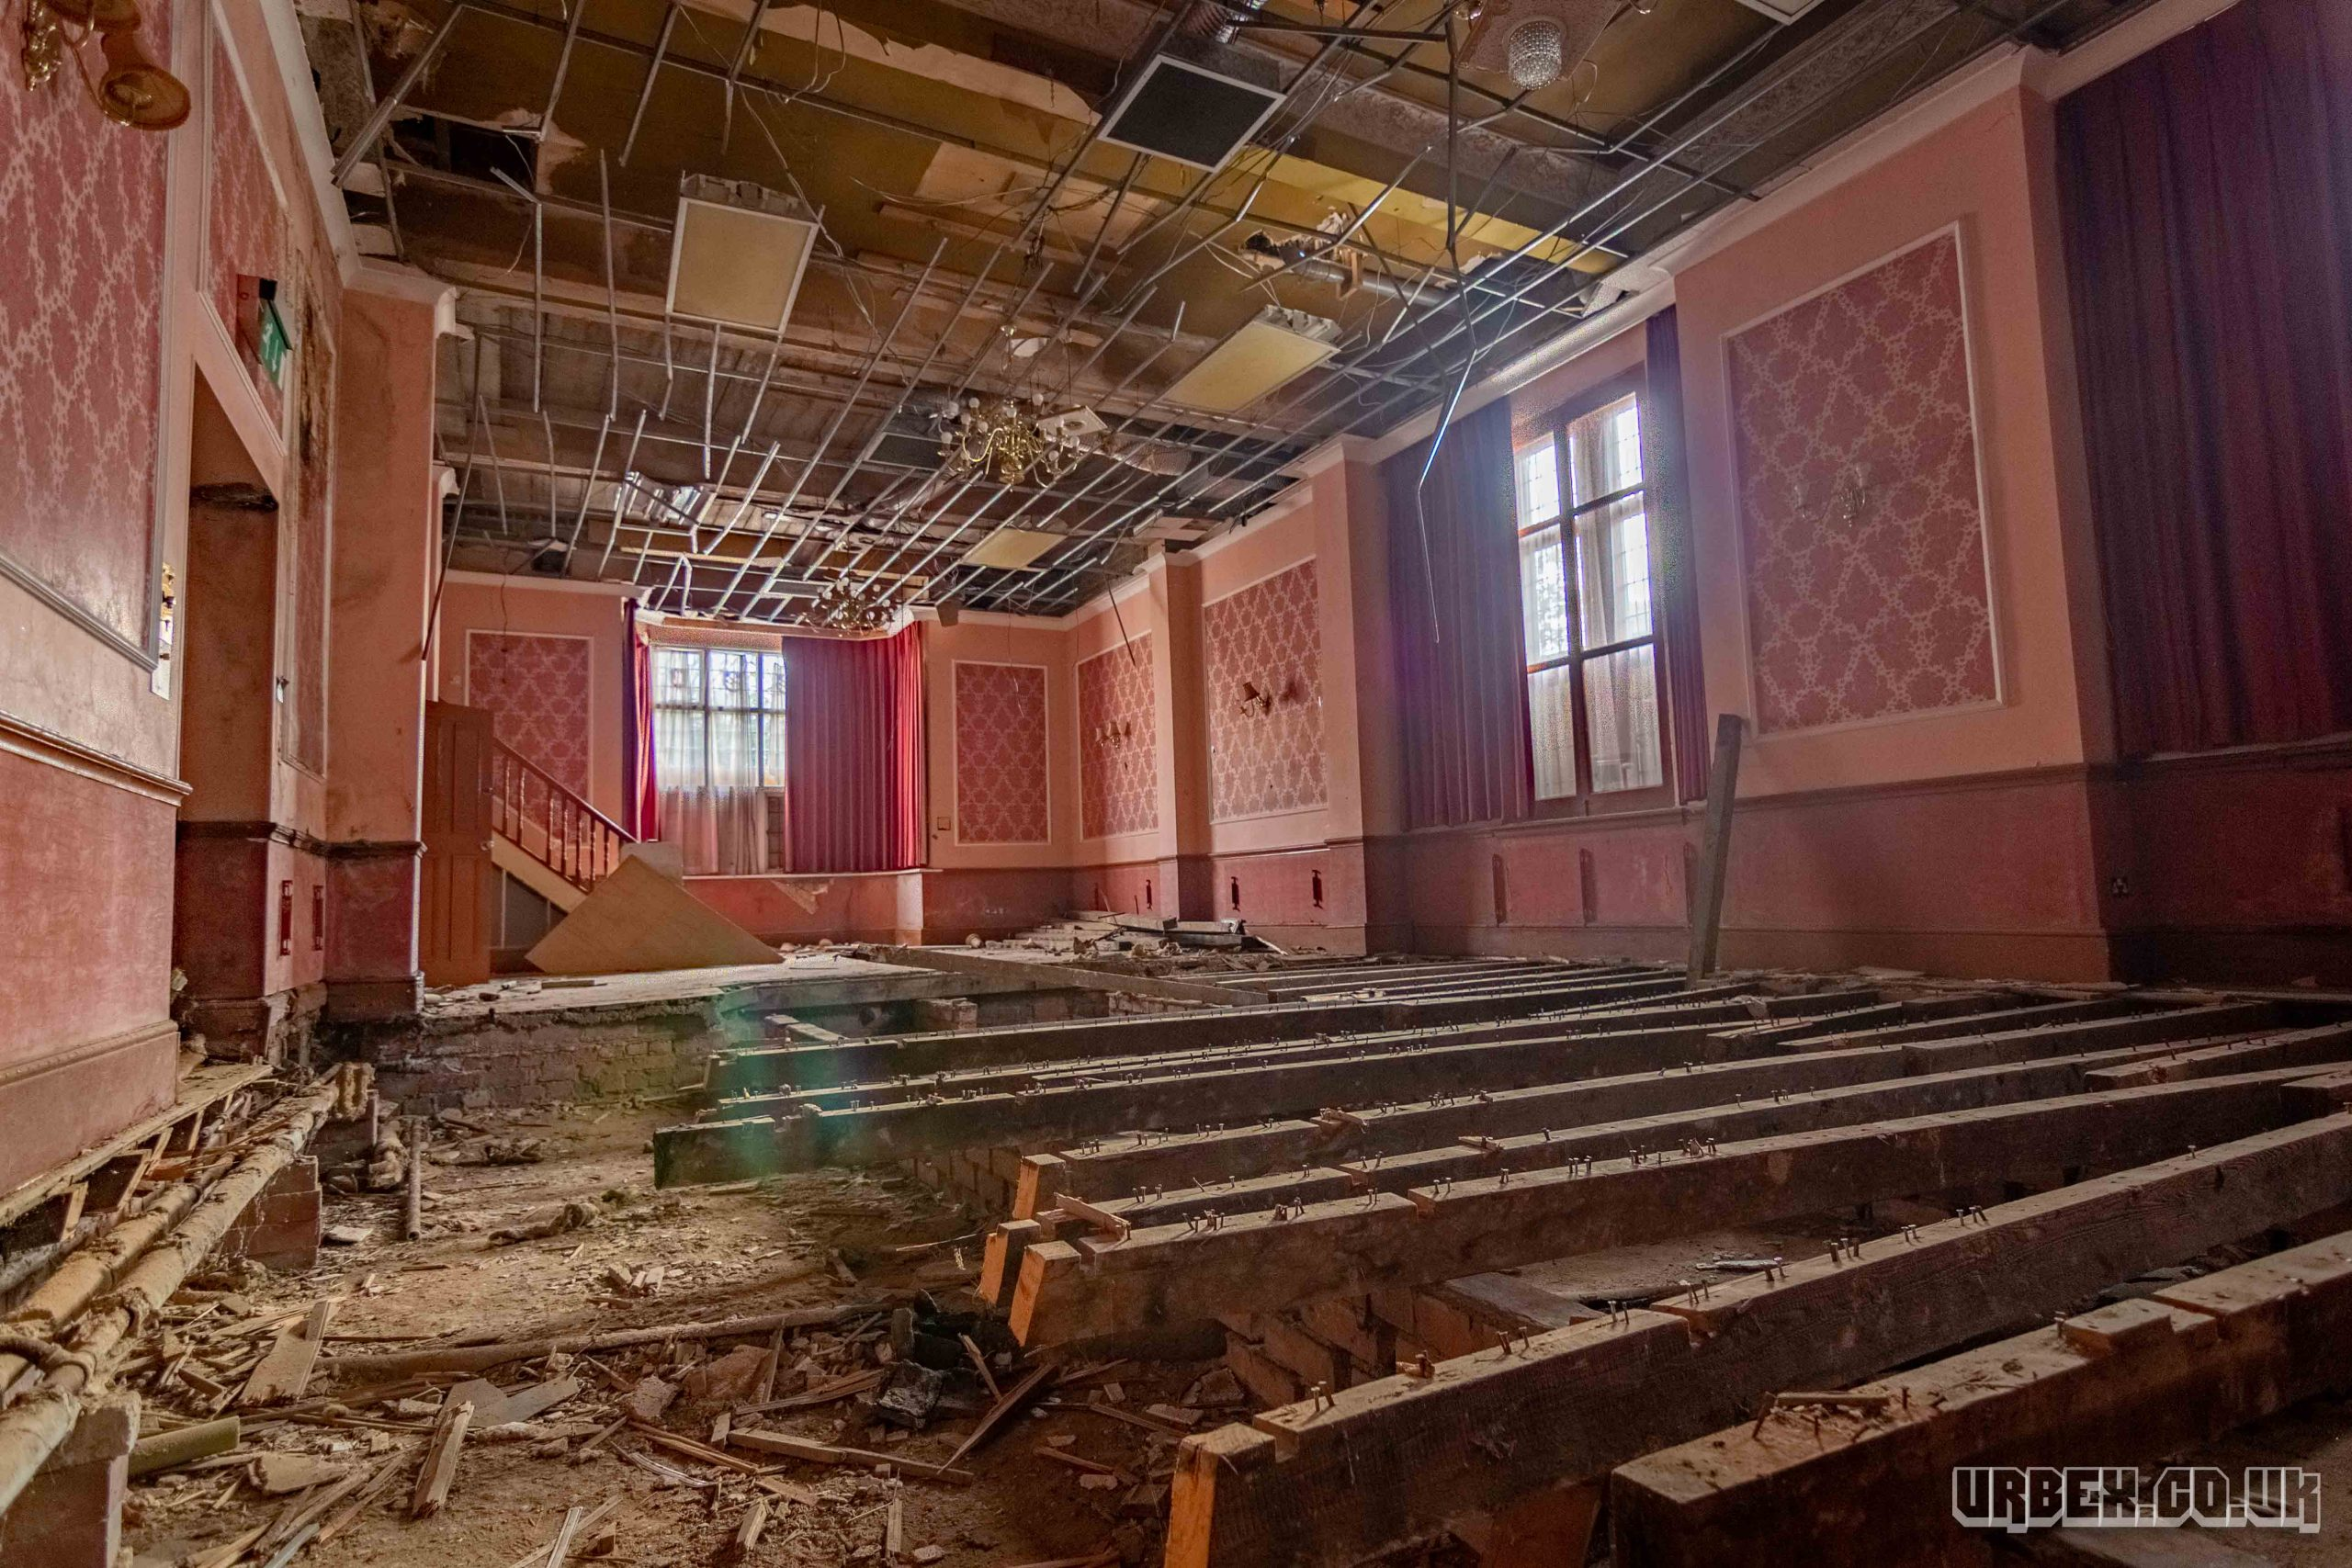 Dilapidated dance room in an abandoned hotel